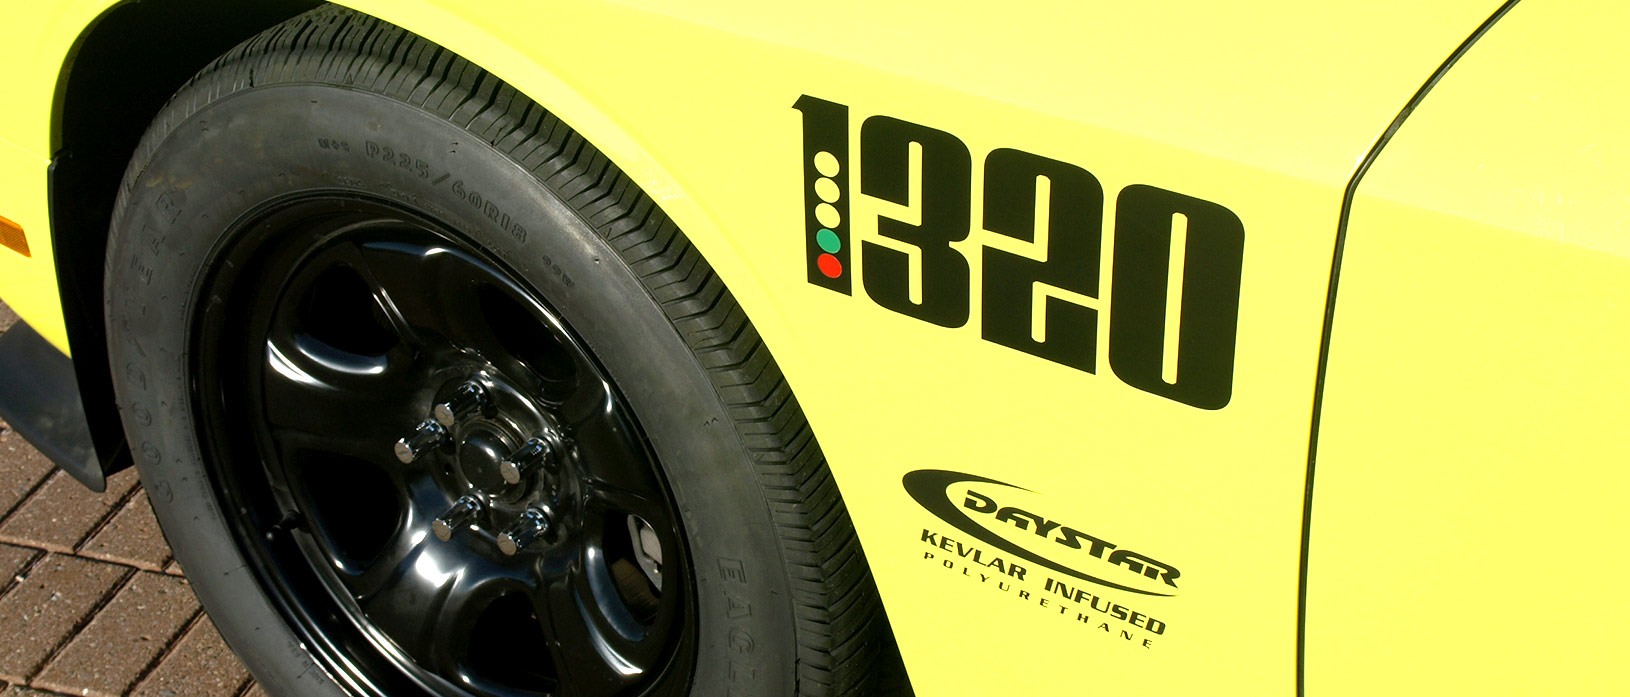 "The 1320 fender logos make inventive use of the iconic drag strip ""Christmas tree"" starting line signal. The comparatively narrow front tires are in keeping with drag strip thinking where wide front rubber defeats quickness through increased rolling resistance and weight."